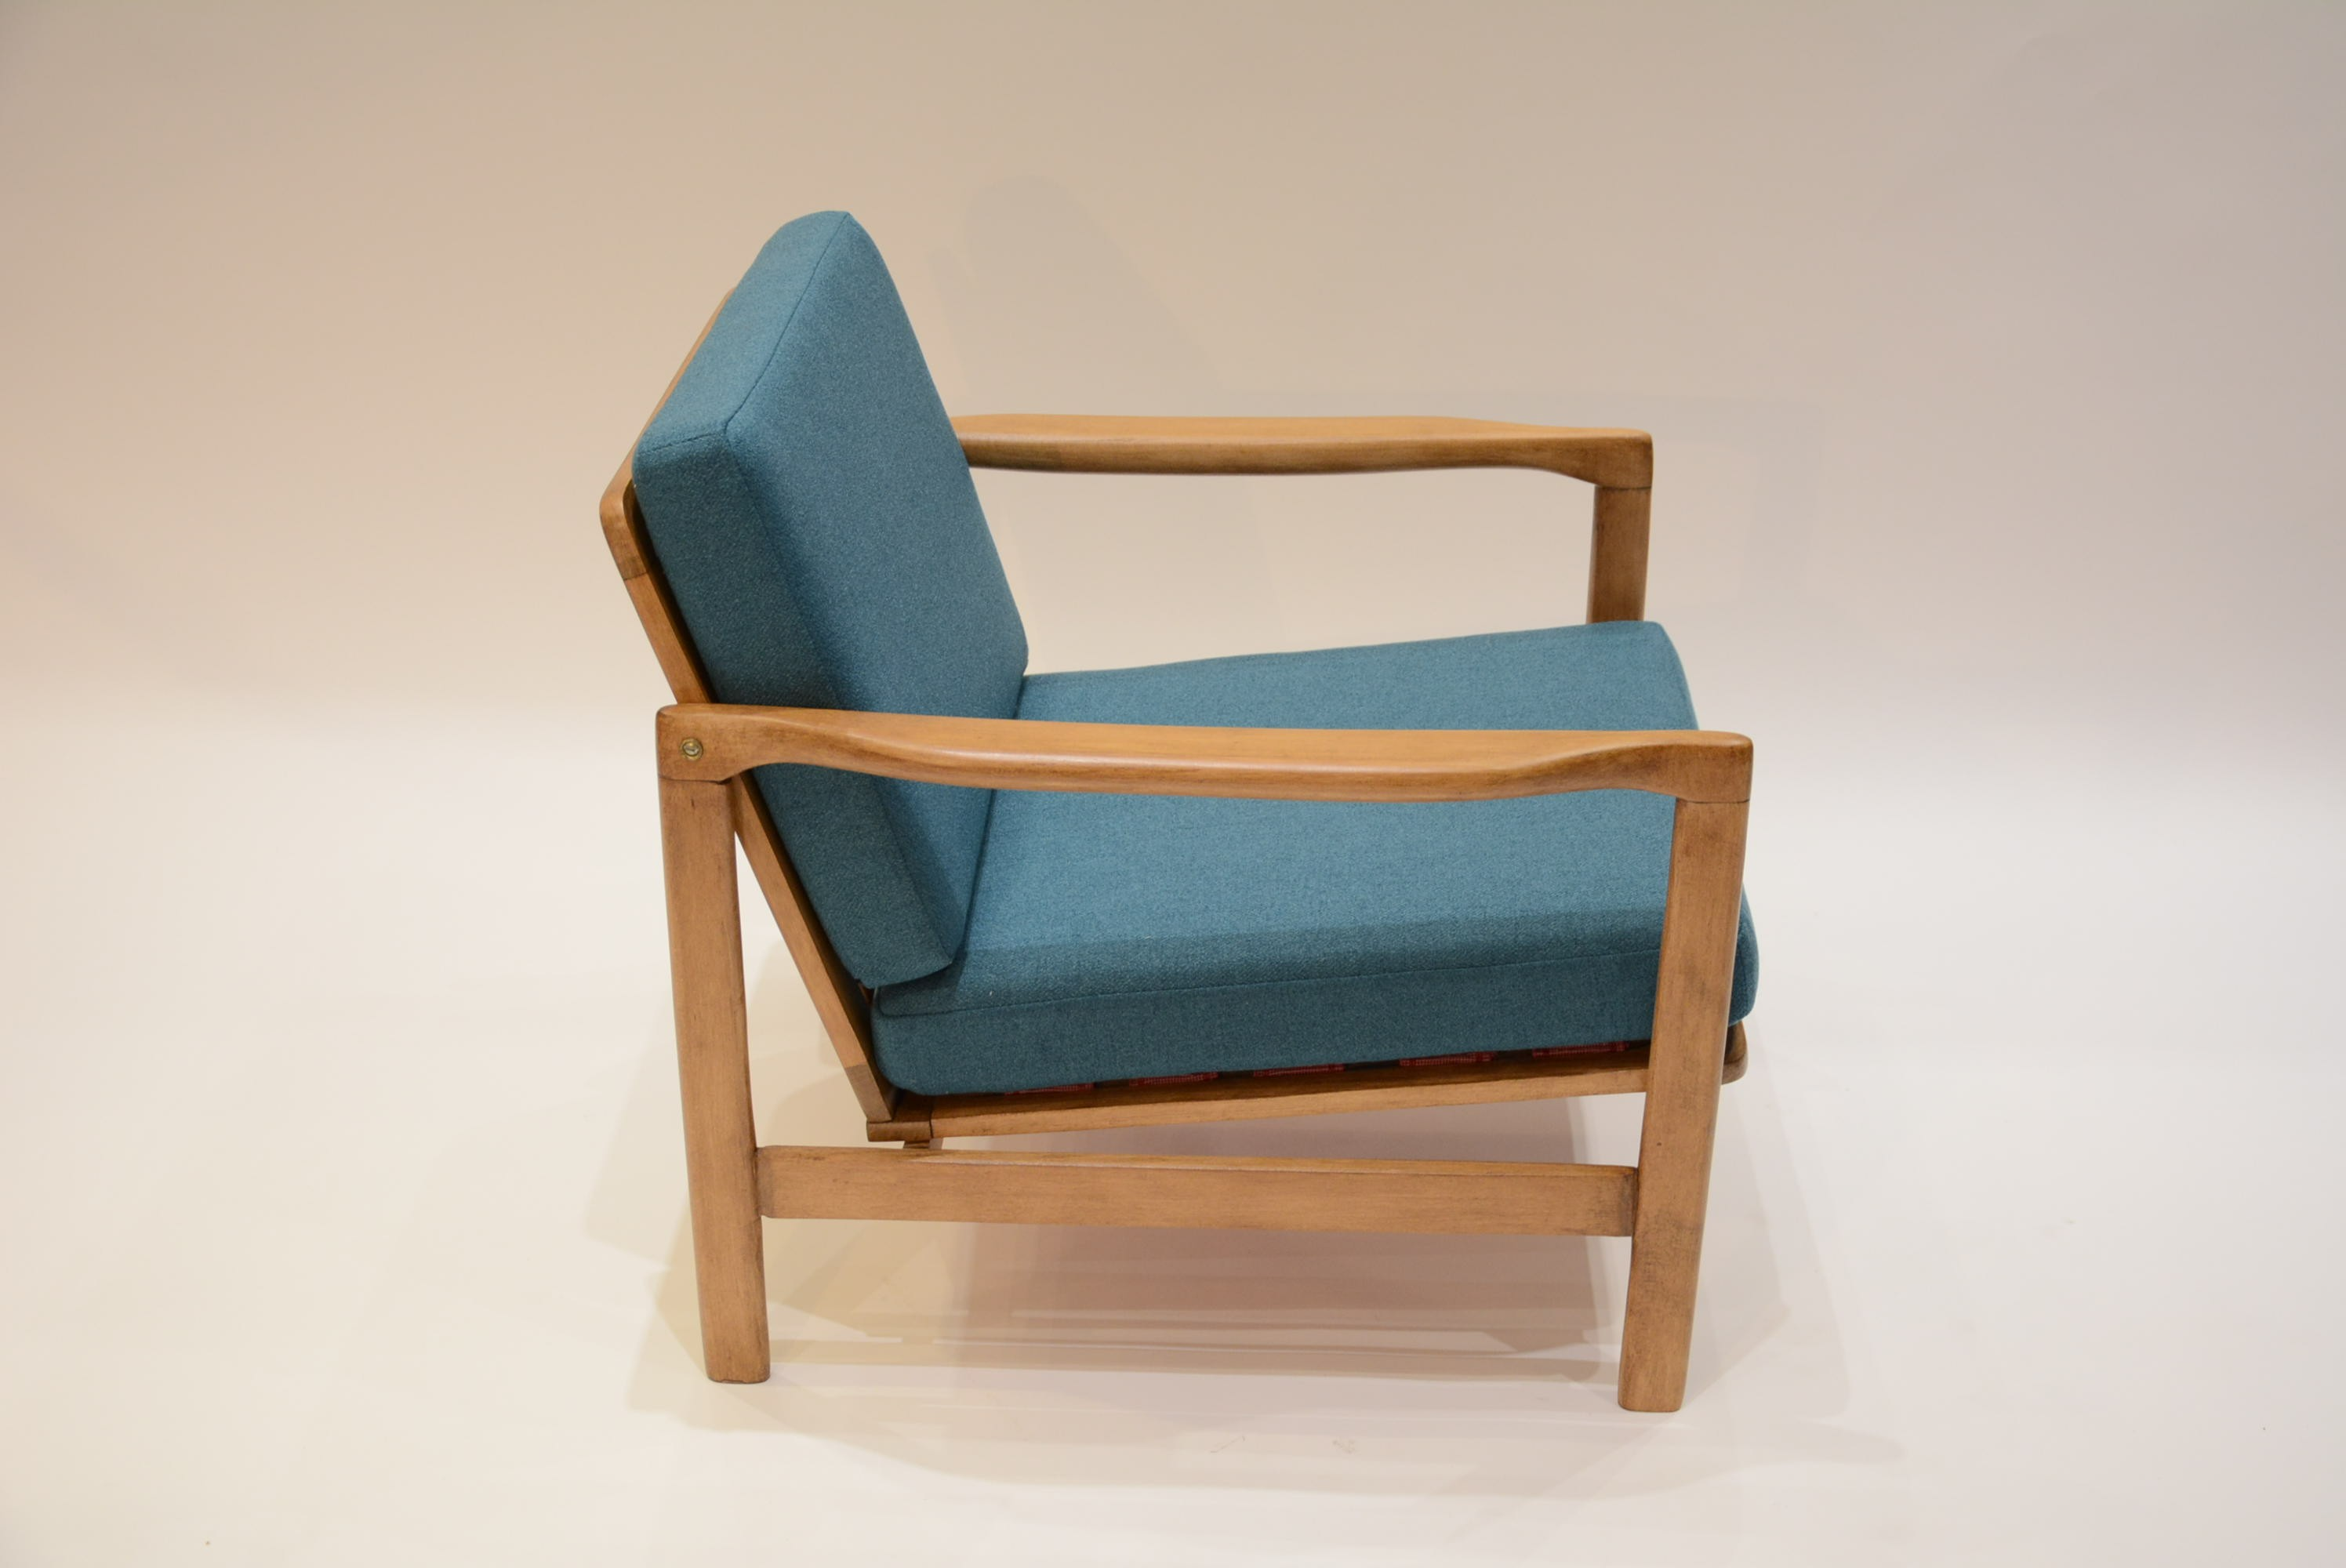 Peacock Blue Armchair From The Former GDR  1970s. Previous Next